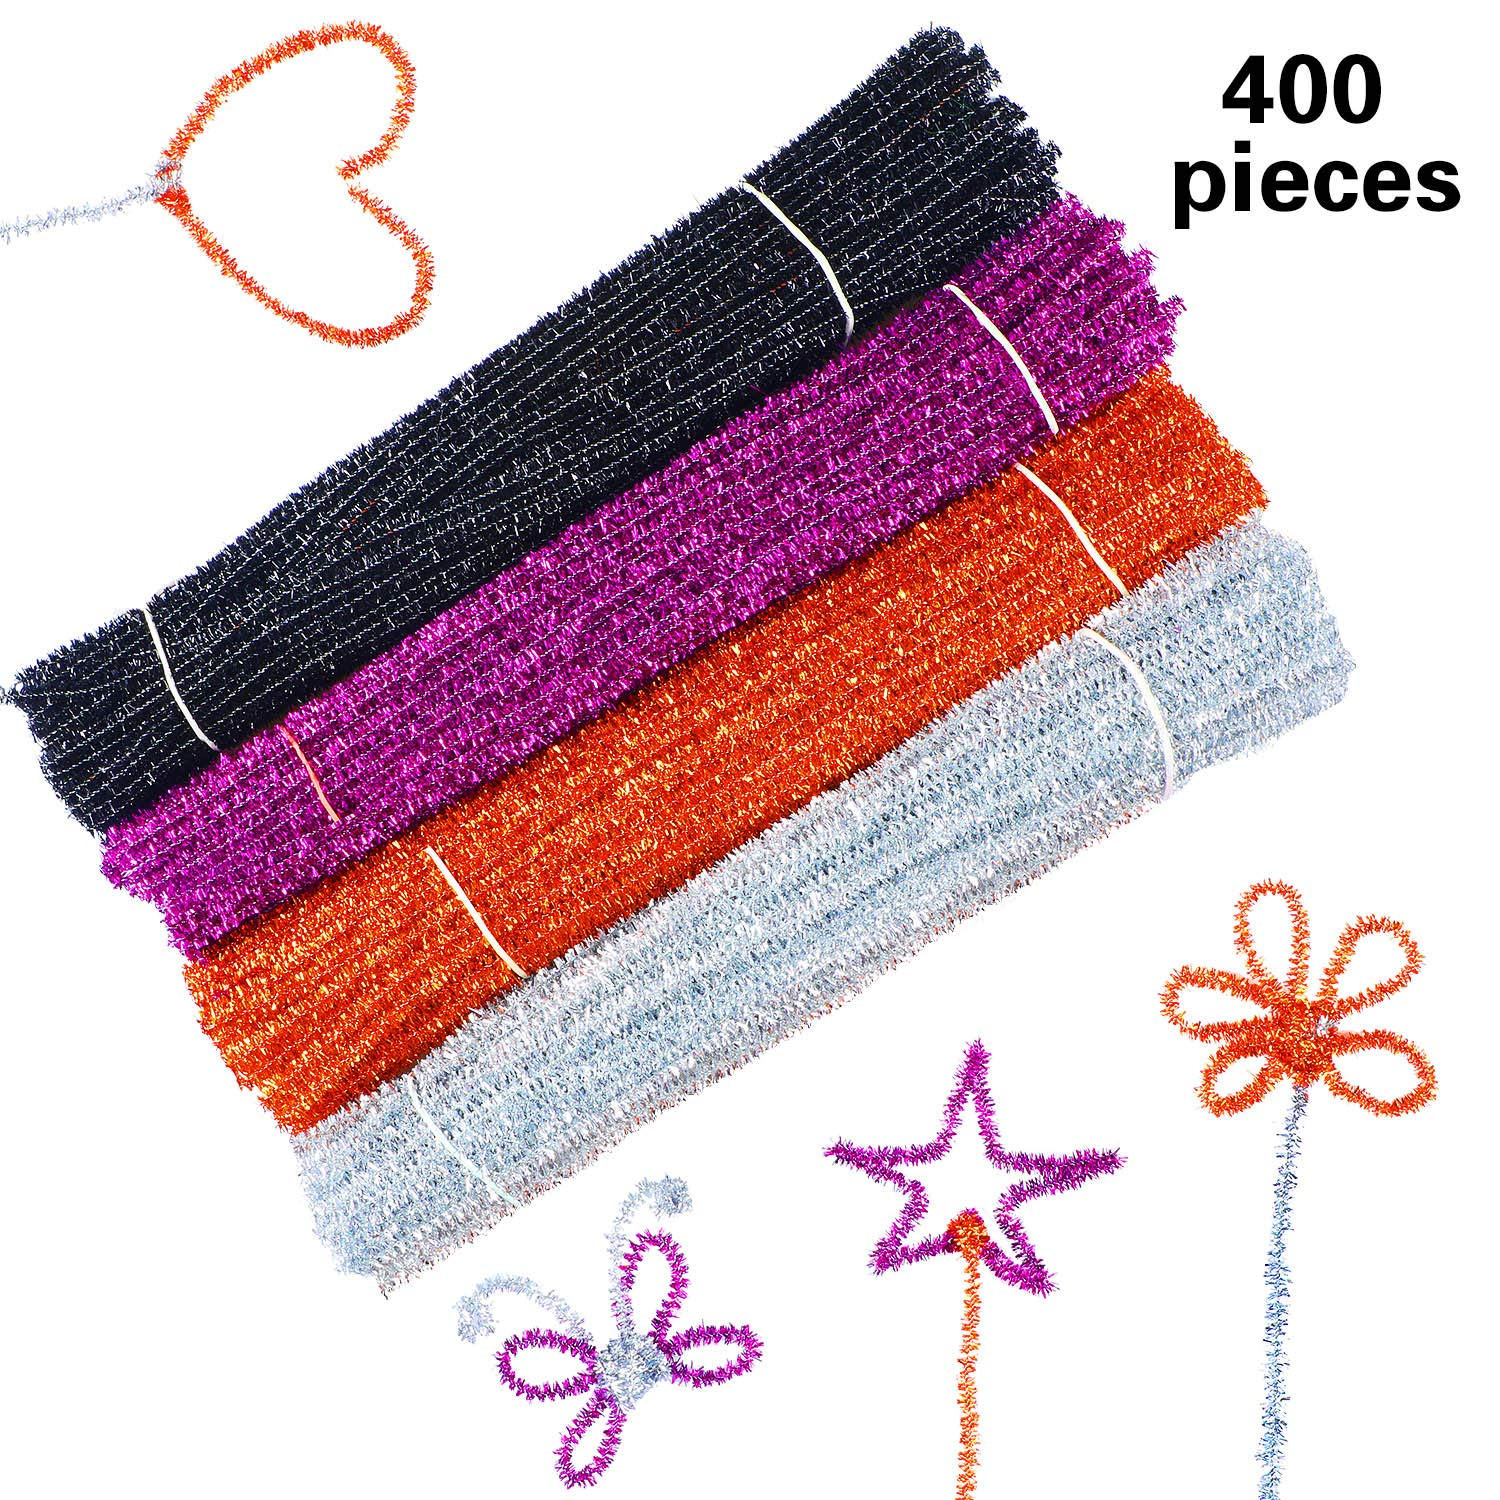 400 Pieces Craft Pipe Cleaners Glitter Chenille Stems Creative Arts Chenille Stems For Diy Craft Halloween Decoration 12 Inches Black Purple